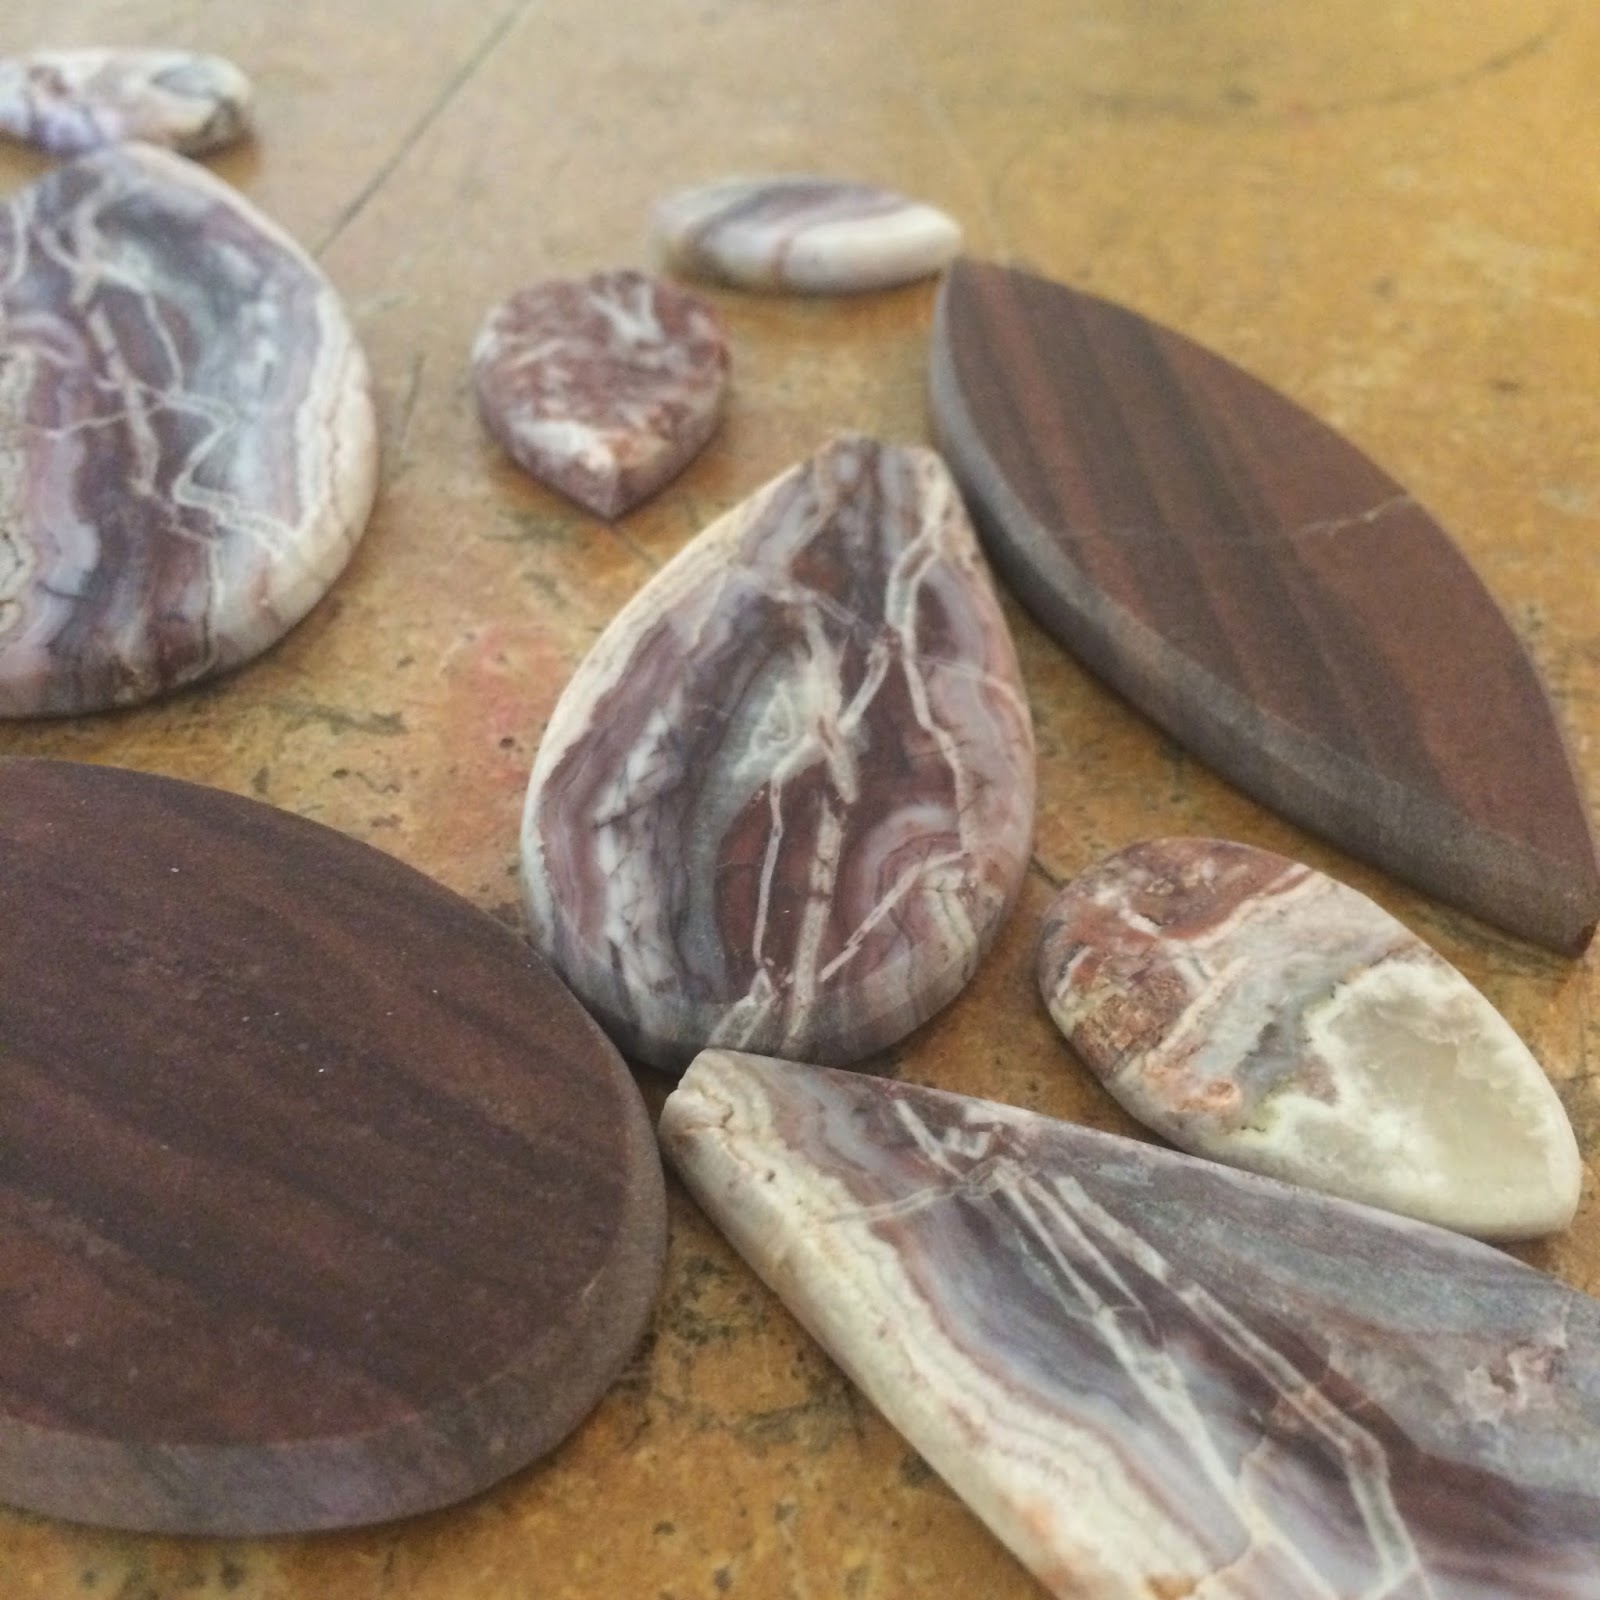 Arizona jasper and Agate cabochons that are partially done